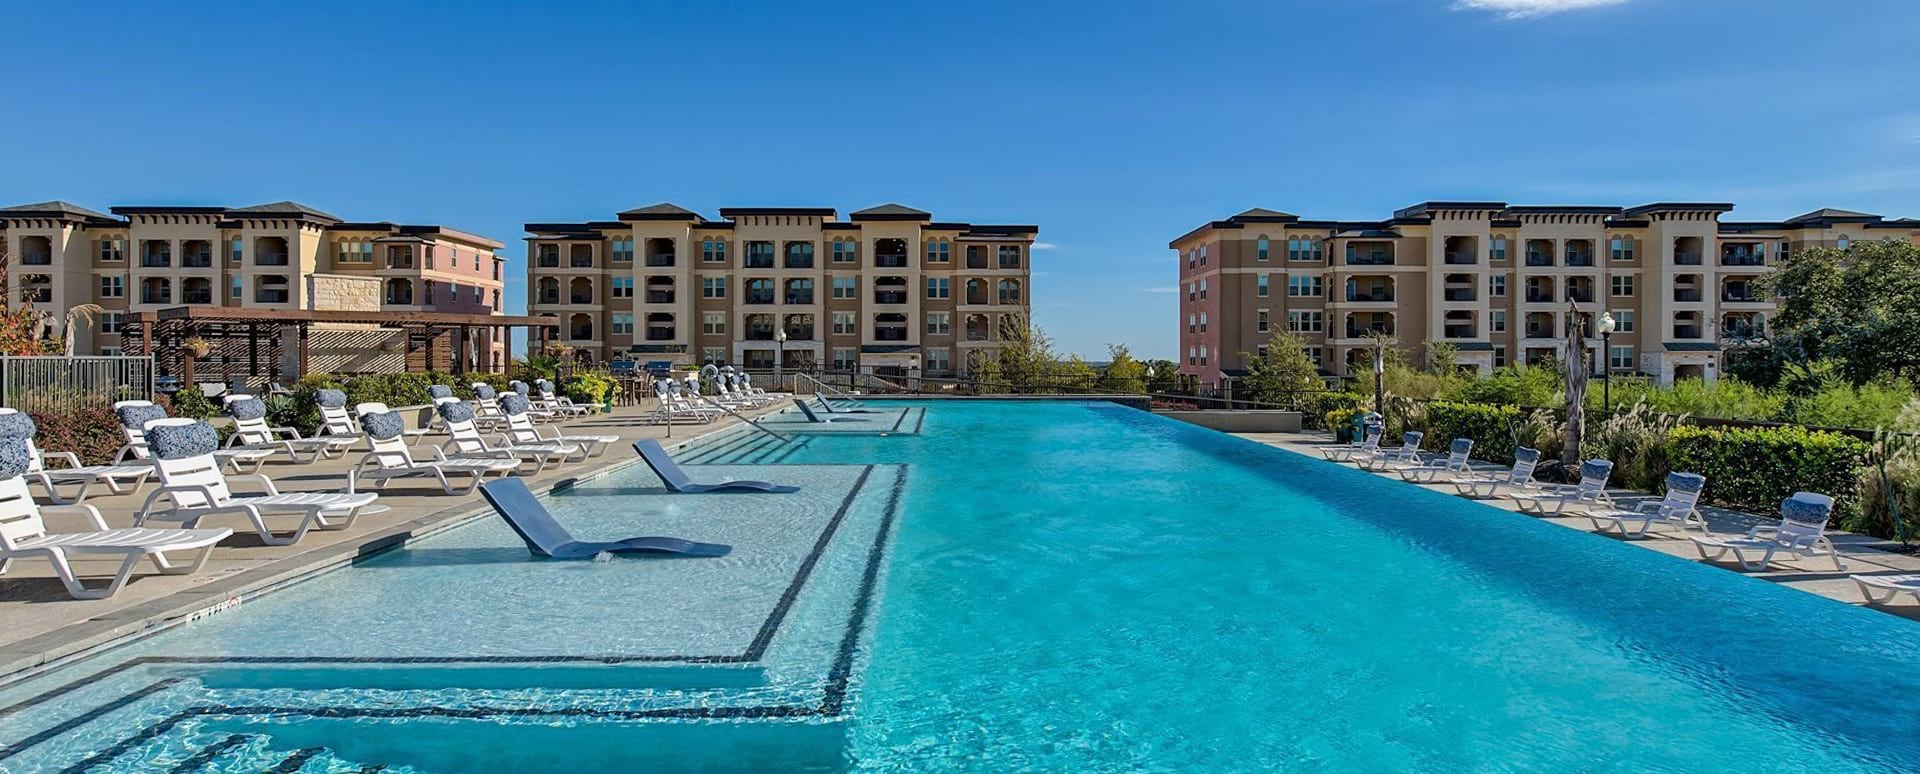 Resort style pool at apartments in San Antonio, TX